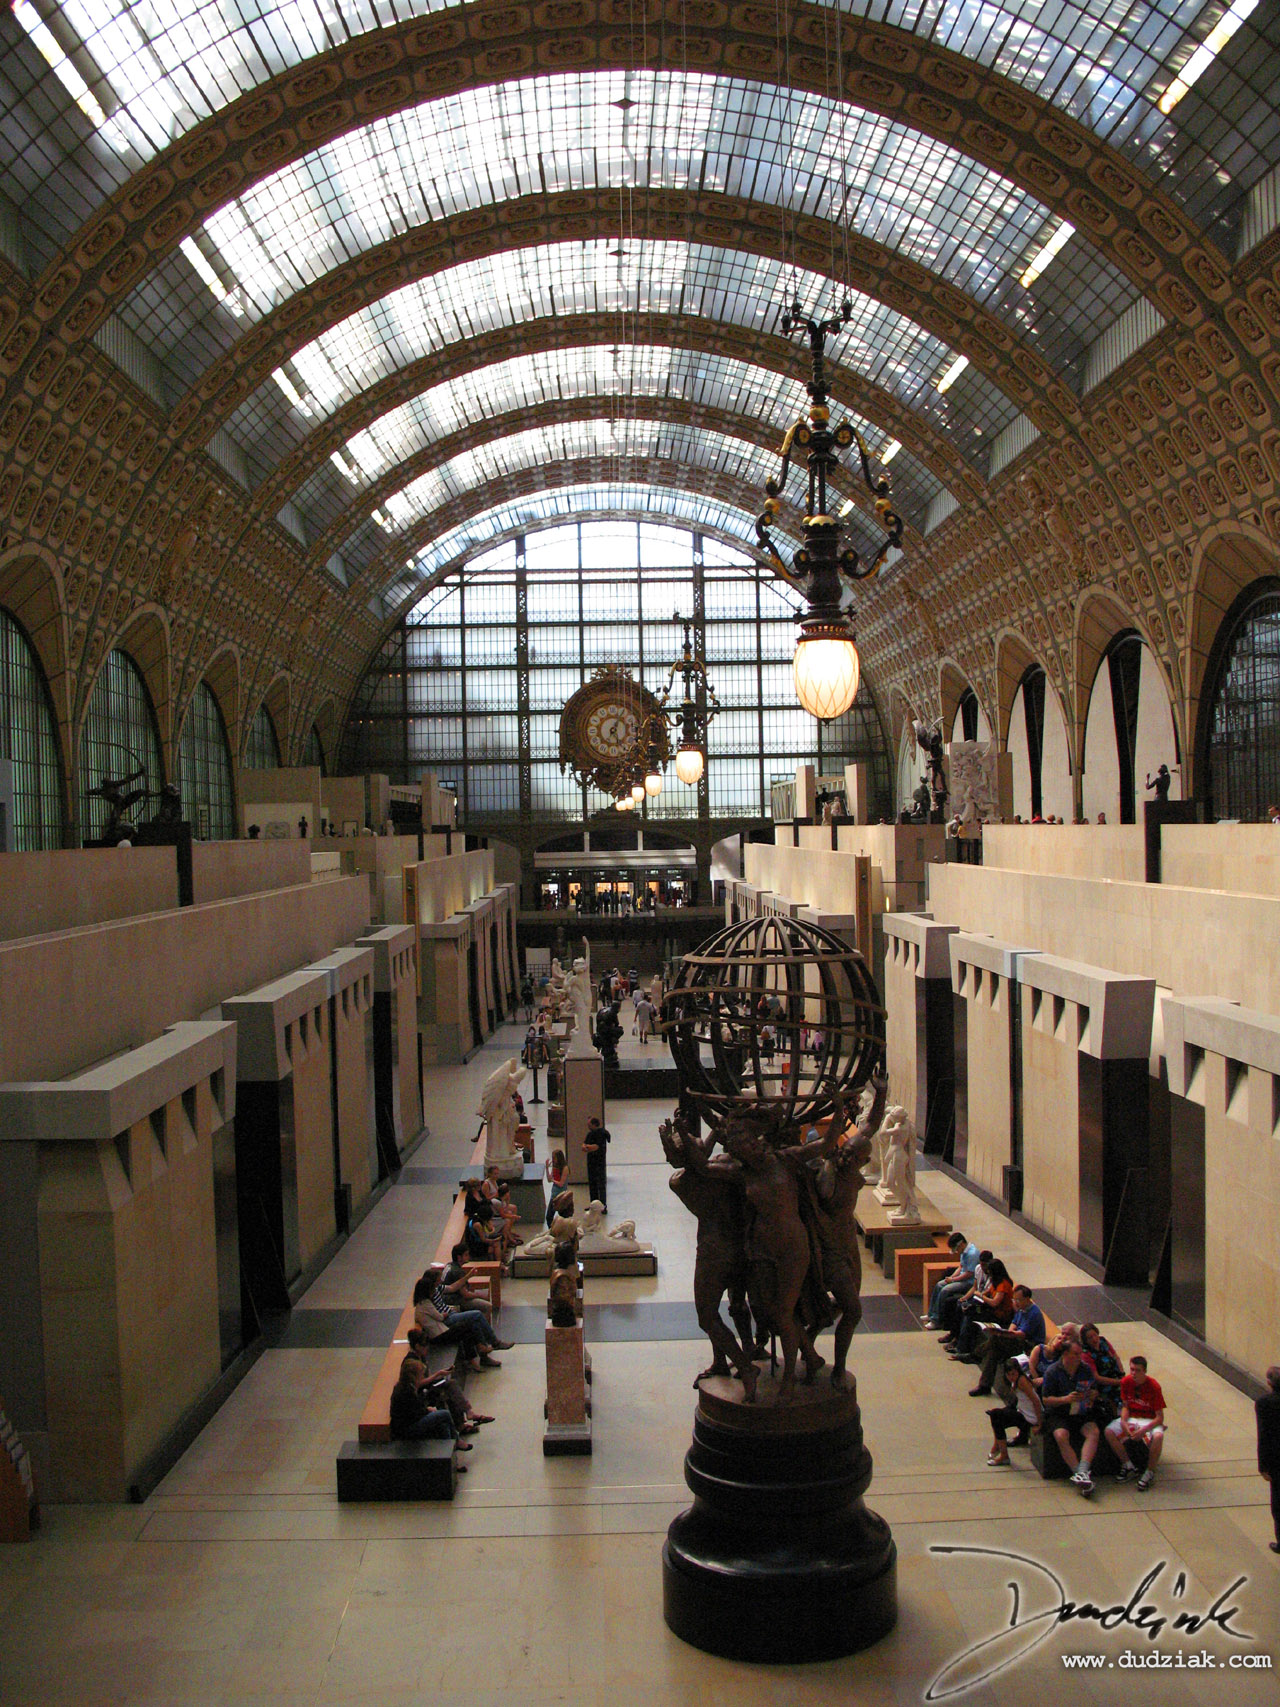 Musée d'Orsay,  France,  Orsay Museum,  Orsay Museum,  Musée d'Orsay,  Paris,  France,  Paris